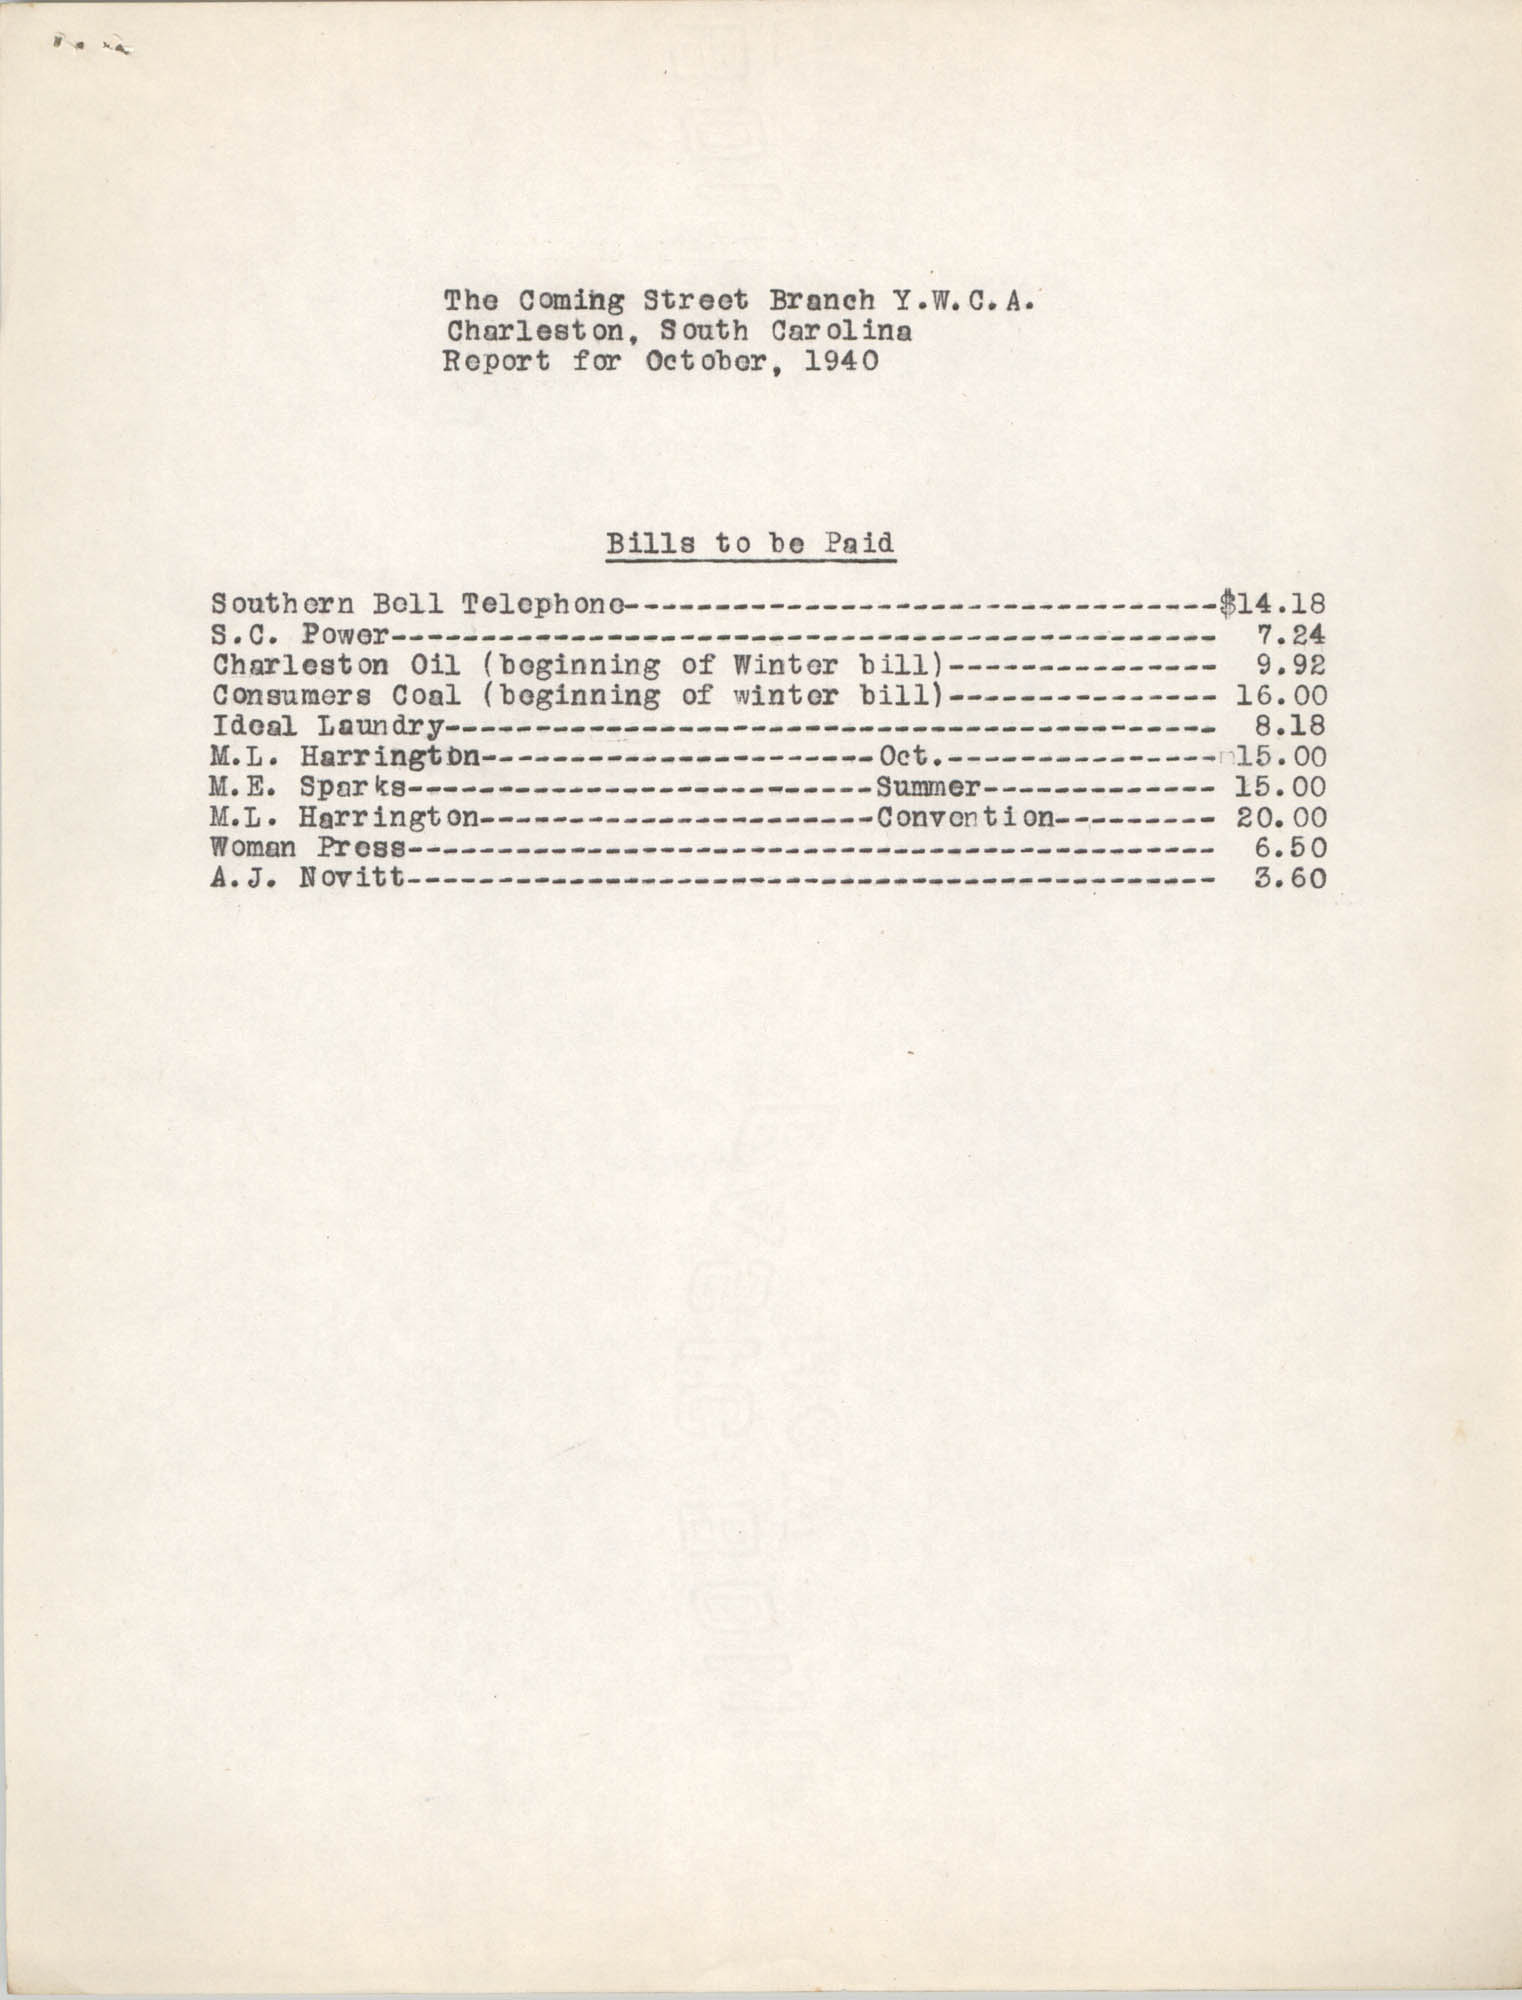 Monthly Report for the Coming Street Y.W.C.A., Employment and Groups, October 1940, Page 3